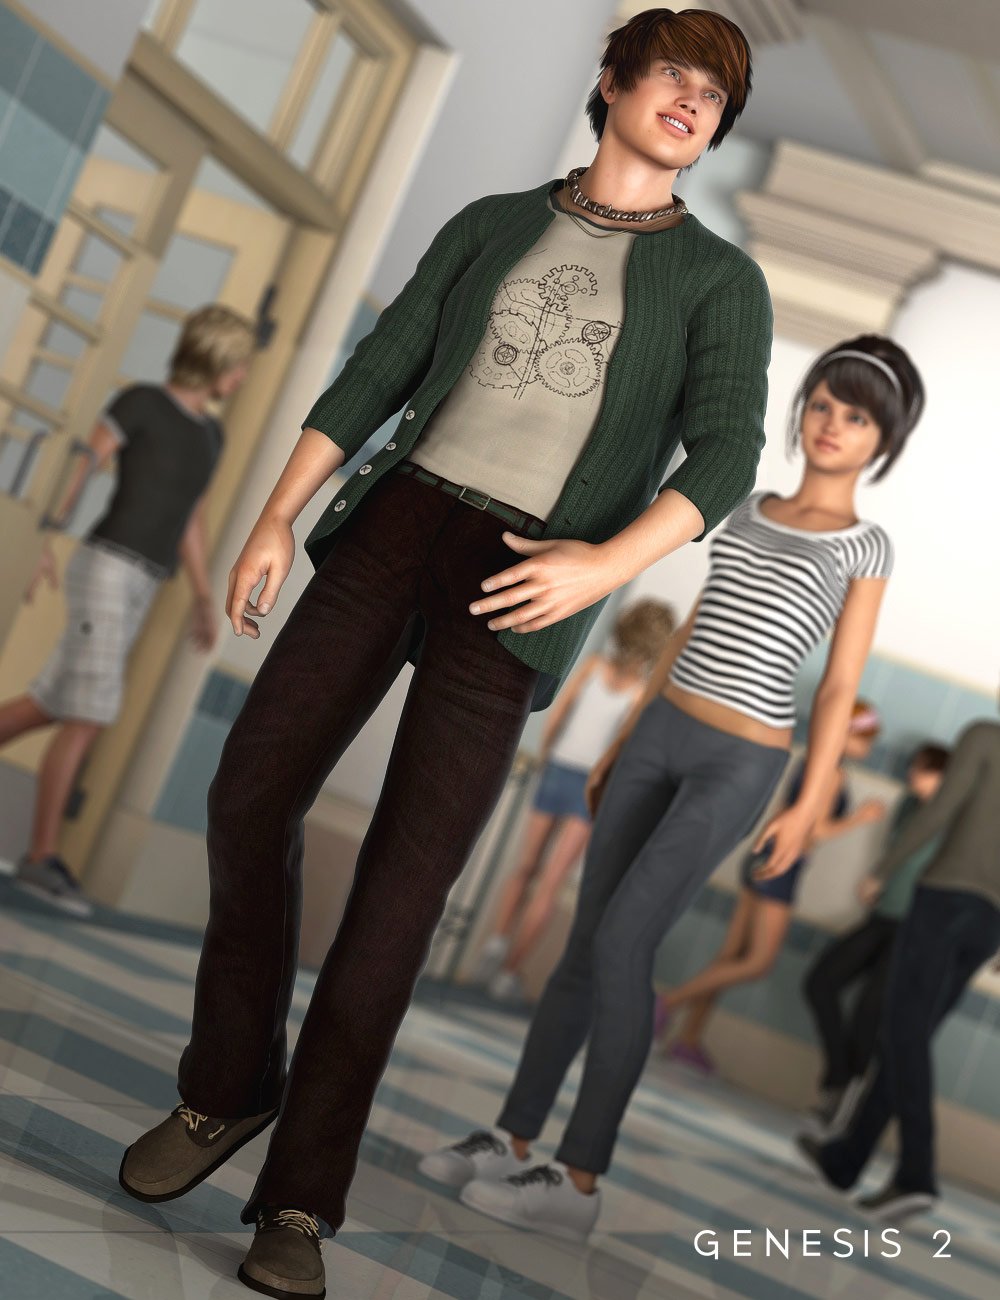 Trendy College Outfit for Genesis 2 Male(s) by: Barbara BrundonSarsa, 3D Models by Daz 3D